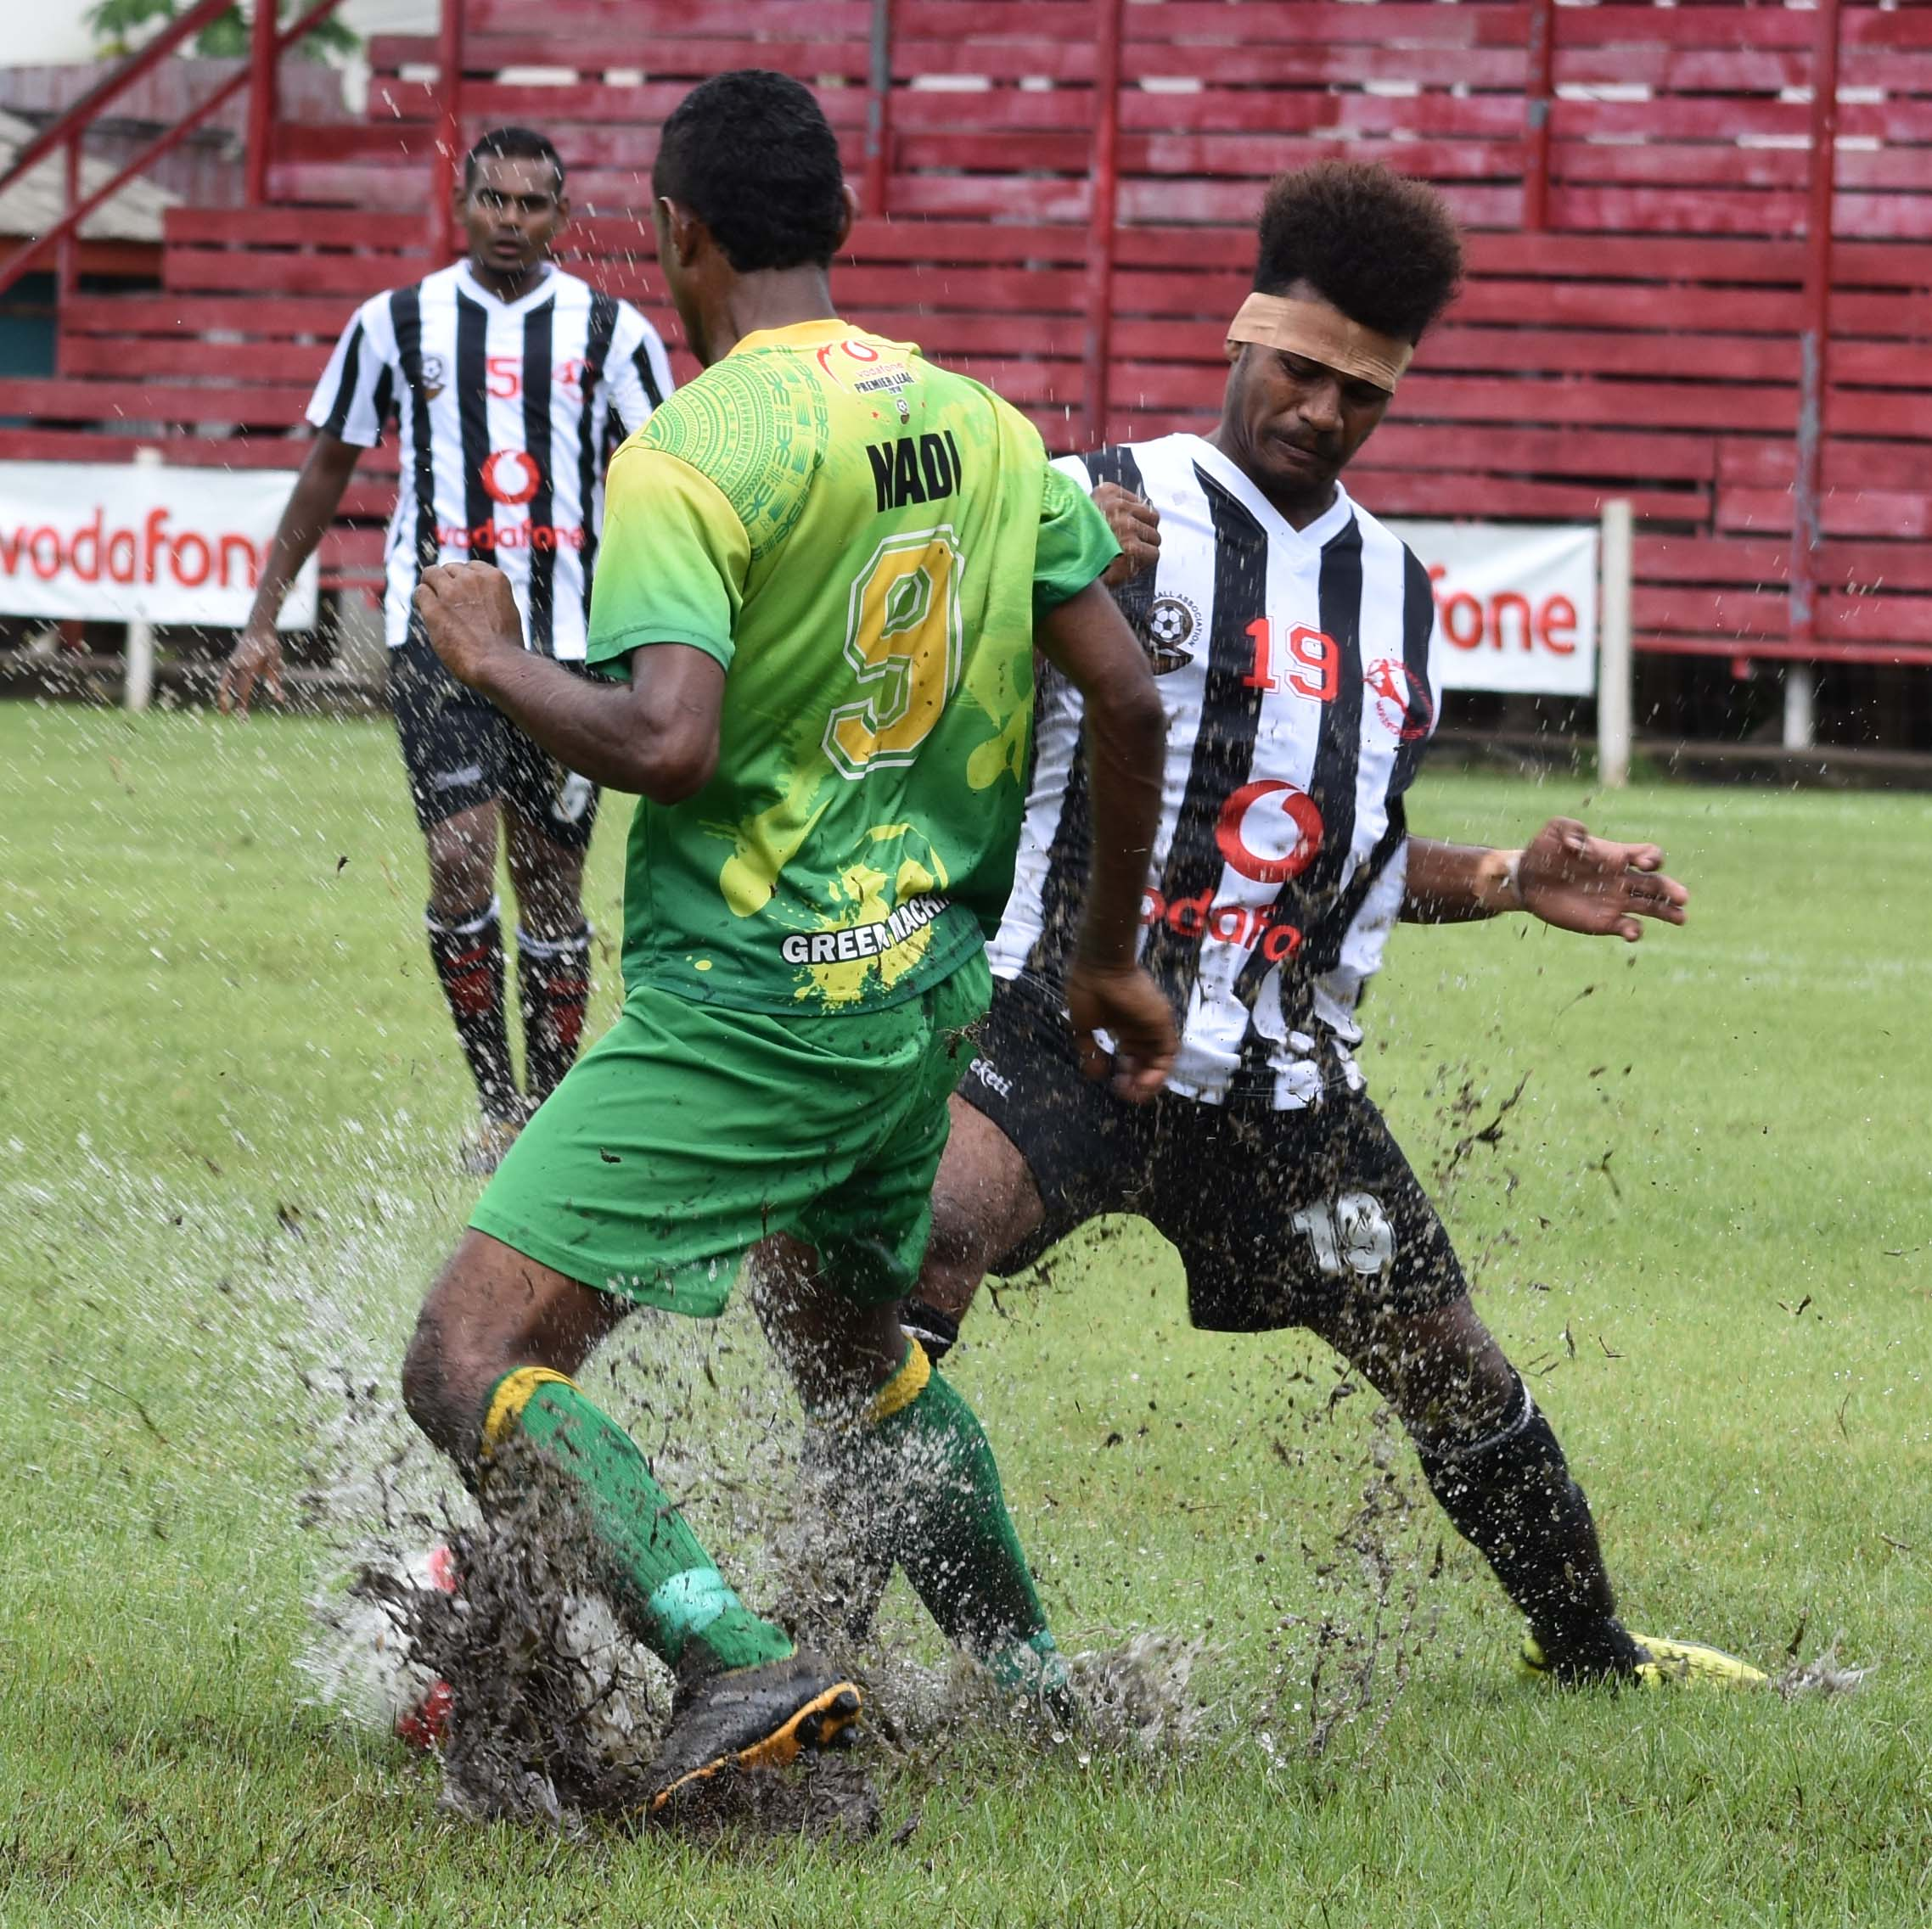 Dreketi defender Akeimi Ralulu defends against Jack's Nadi during their Vodafone Premier League clash at Subrail Park, Labasa, on February 11, 2018.  Photo: Shratika Naidu